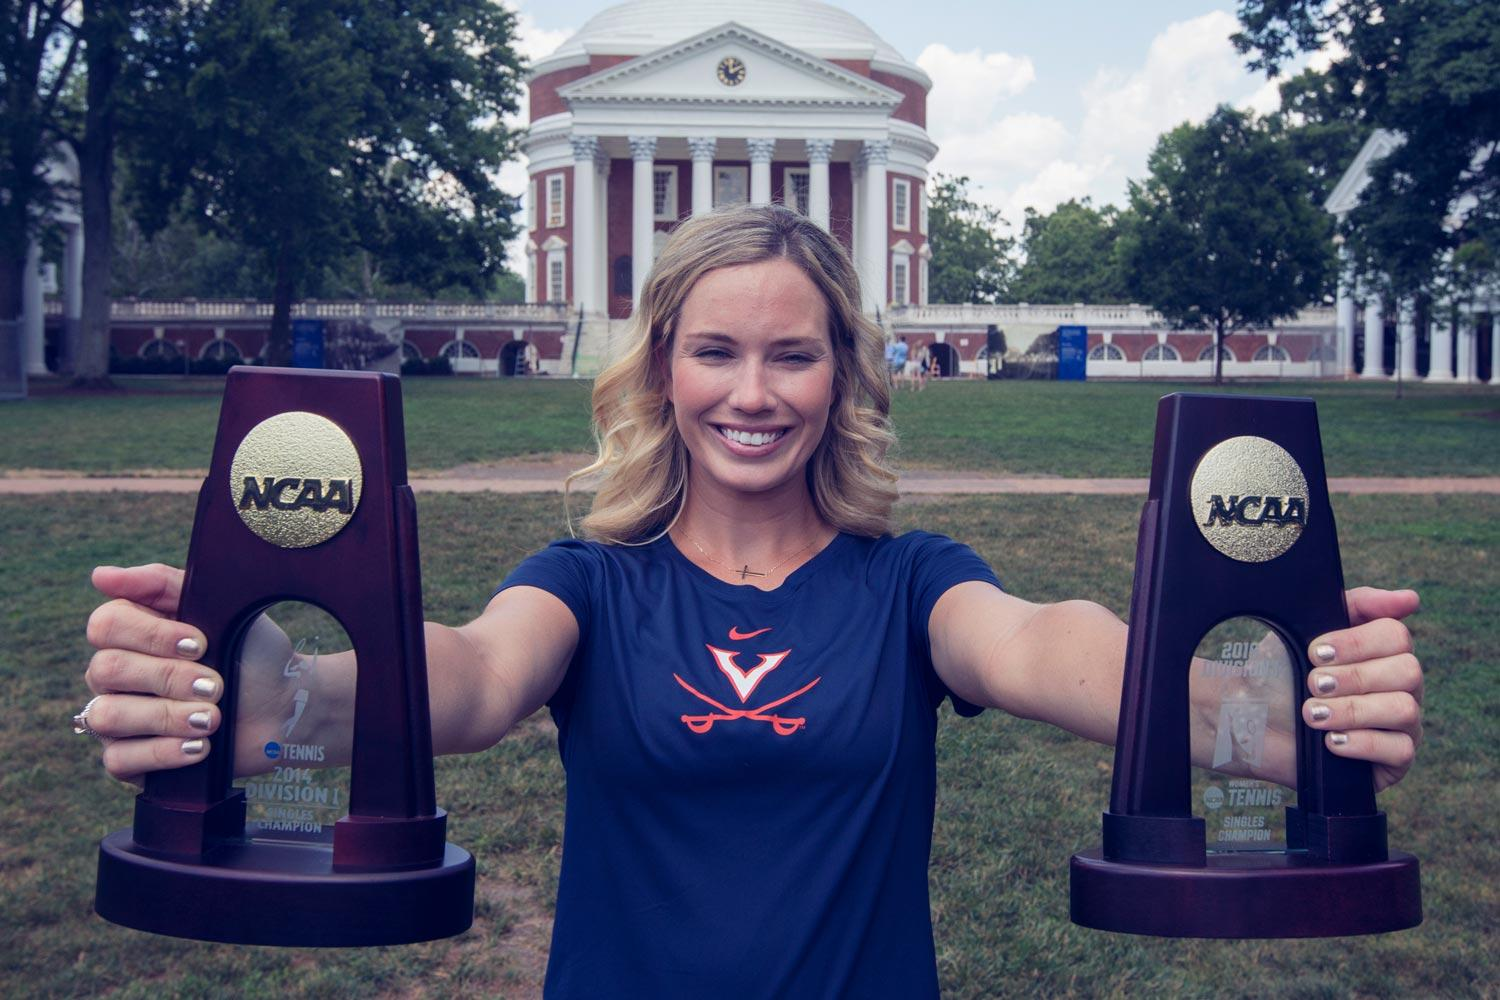 UVA alumna Danielle Collins won NCAA singles championships in 2014 and 2016.